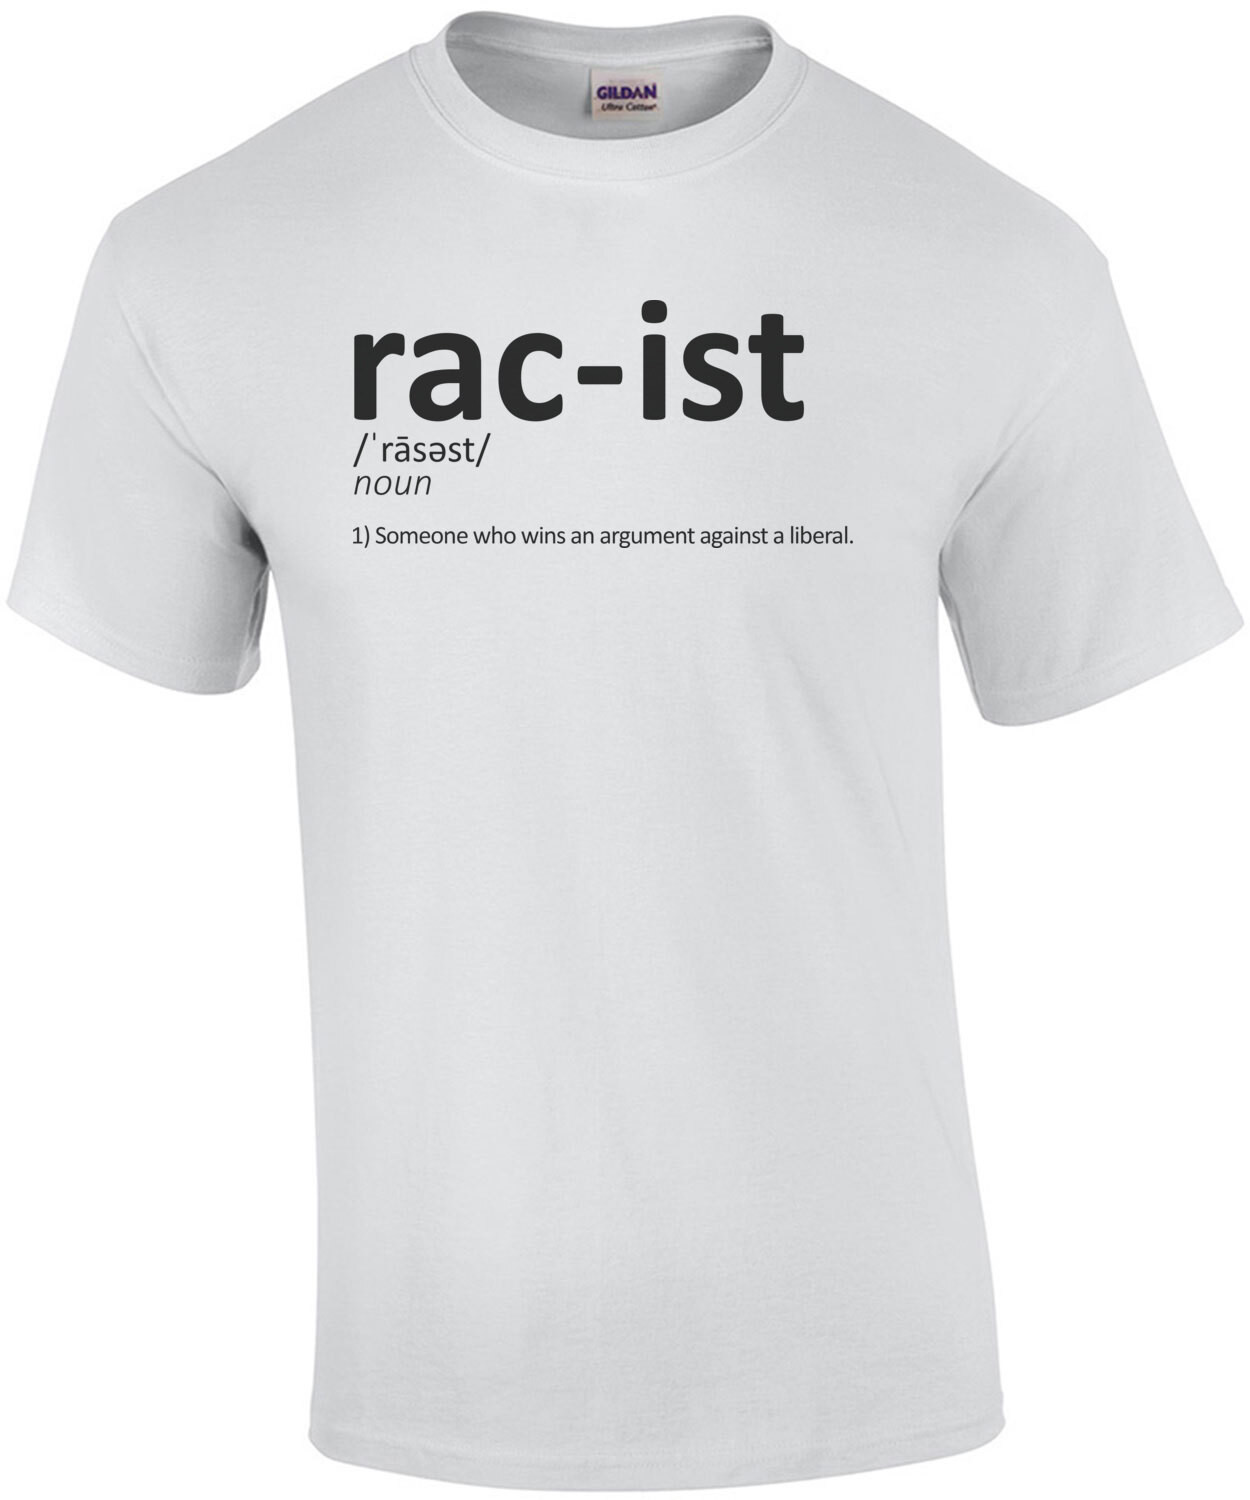 Racist, Someone That Wins An Argument Against a Liberal Funny Conservative T-Shirt